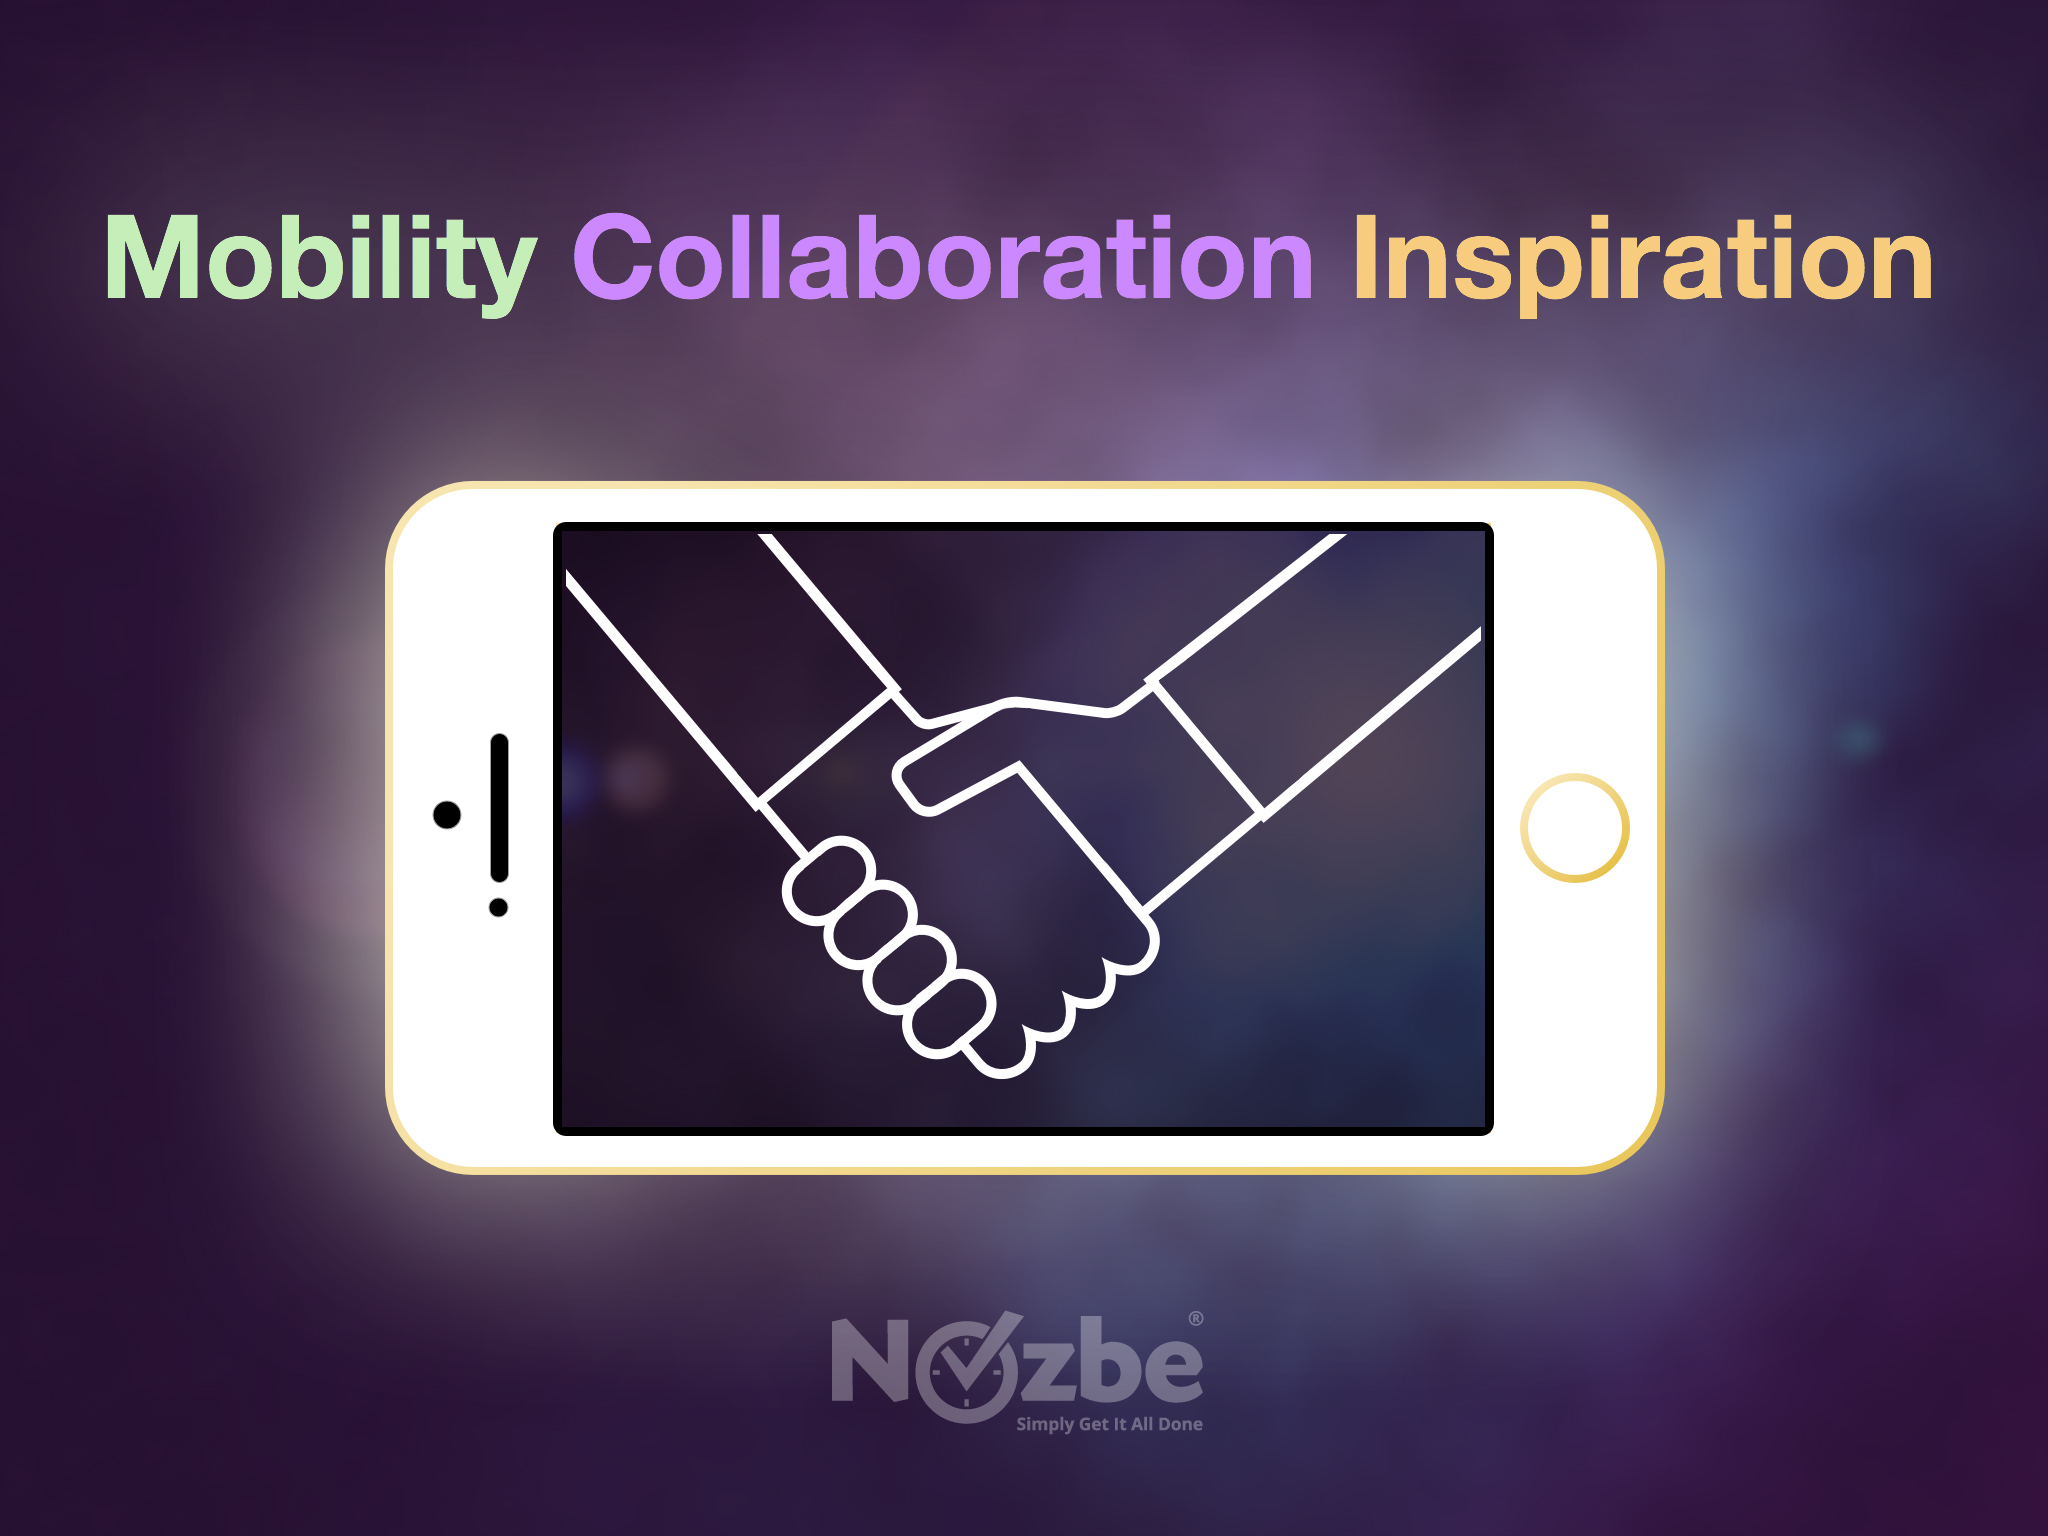 Mobility, Collaboration and Inspiration